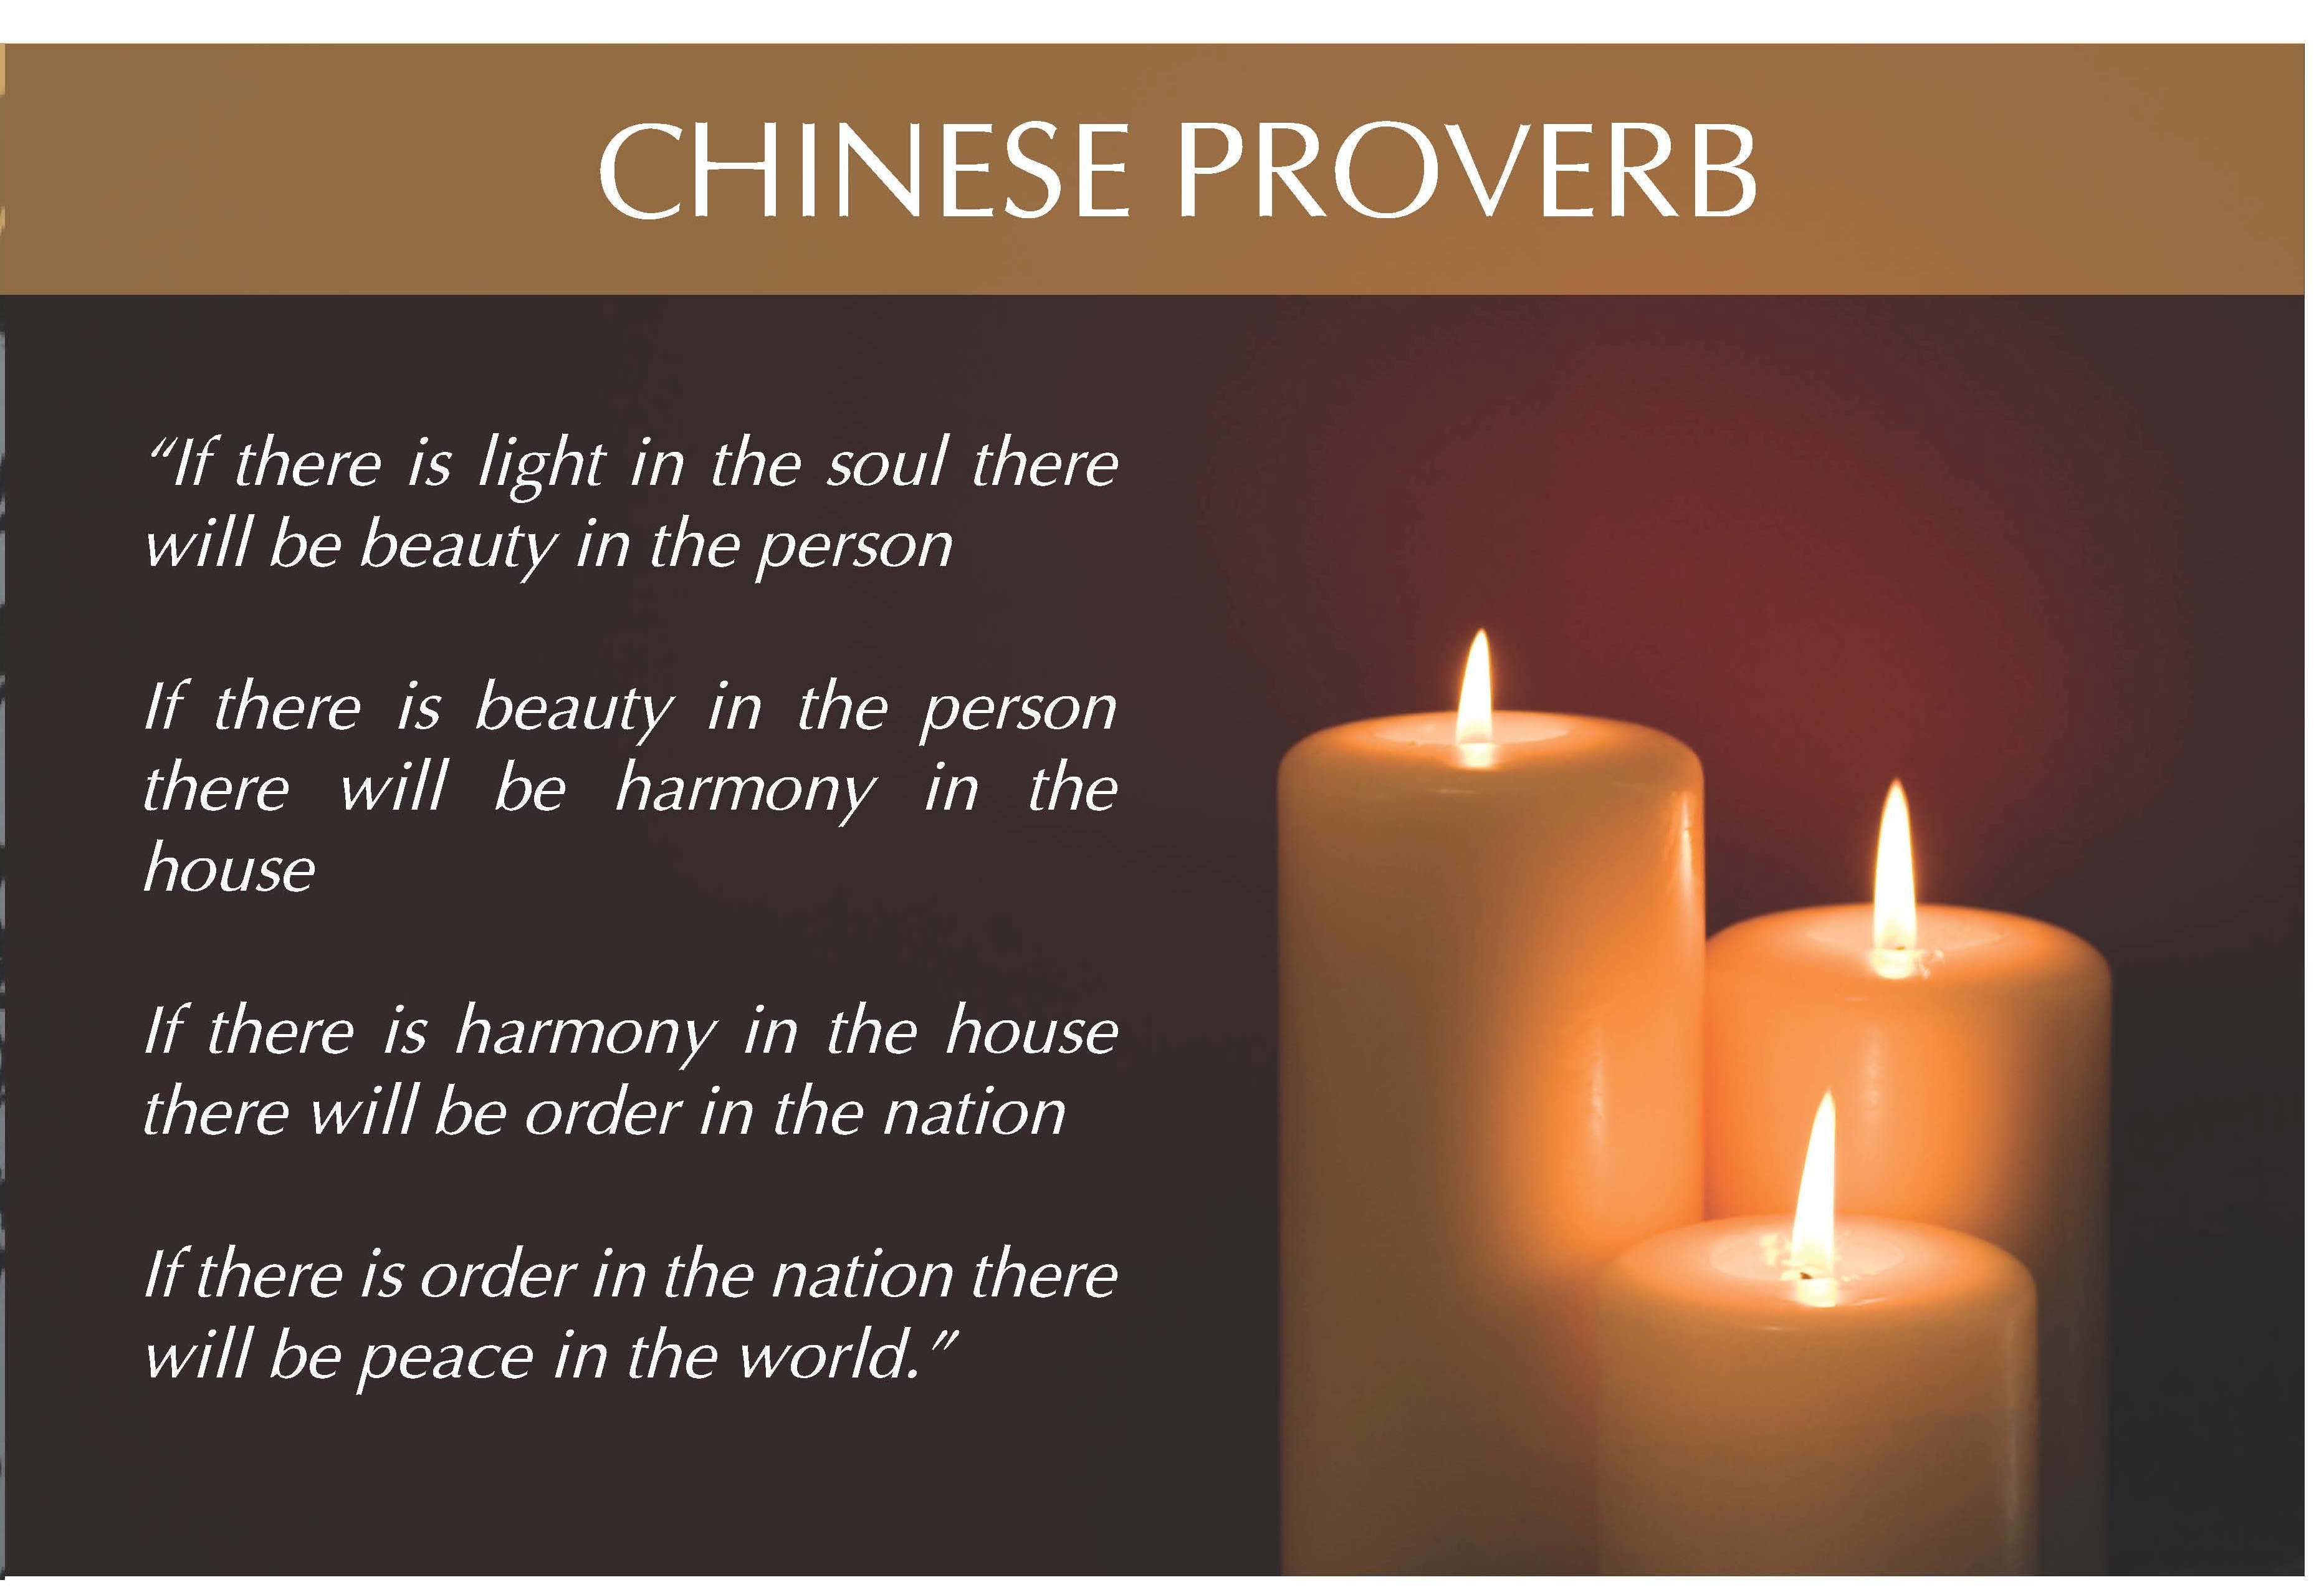 chinese proverbs As an entrepreneur who is always seeking to grow and evolve professionally, i try to collect insightful quotes i can use to help manage my business over the years, i've collected hundreds of passages yet one type always seems to stand out to me--chinese proverbs i find myself fascinated with.